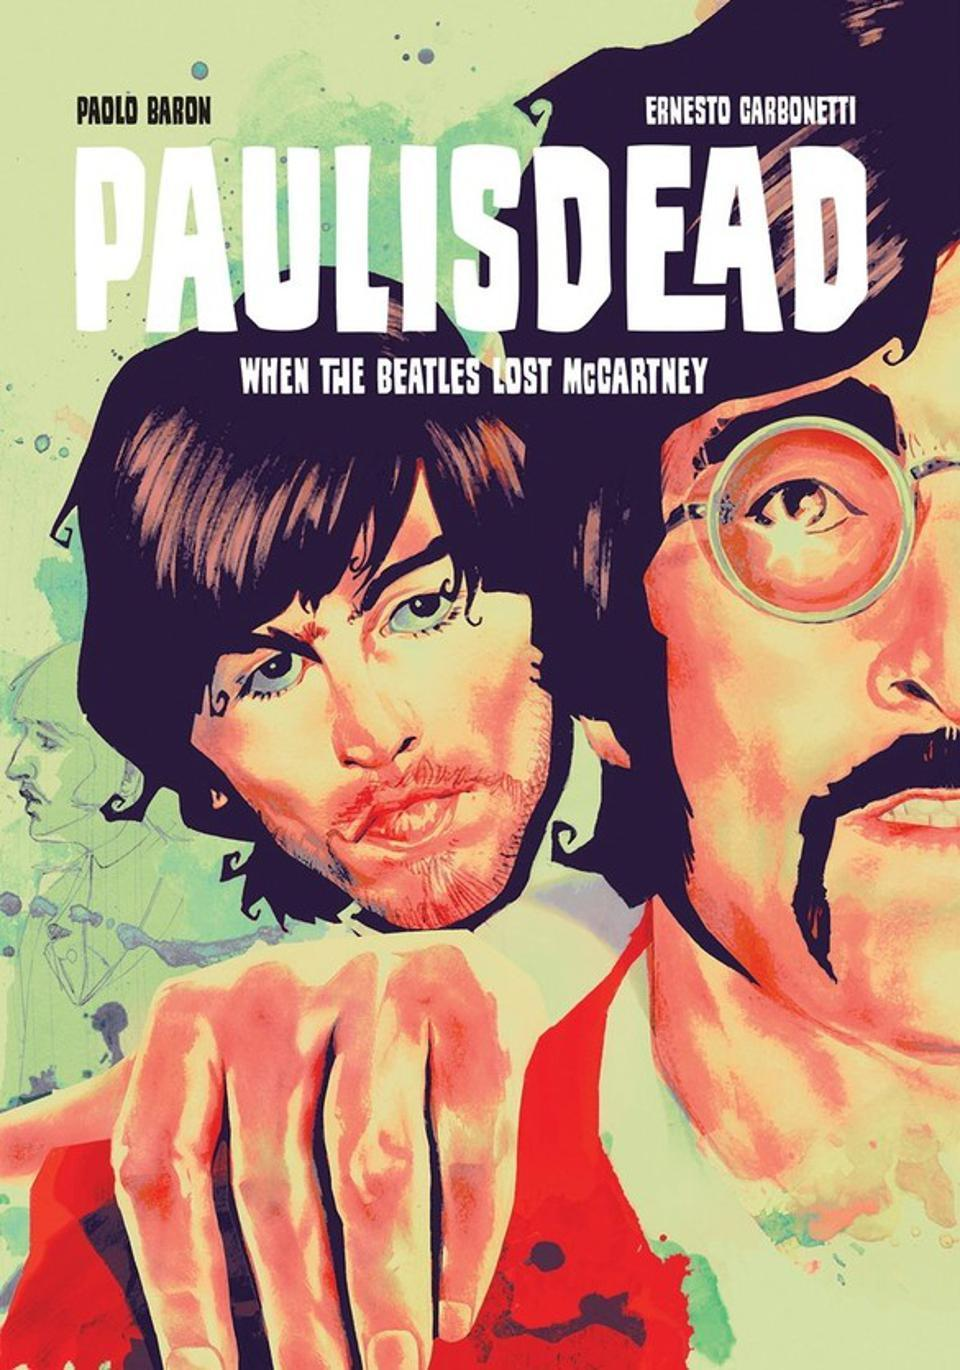 In 2020 Image Comics released the 'Paul is Dead' comic, based on the decades old conspiracy theoryImage Comics/Paolo Baron and Ernesto Carbonetti